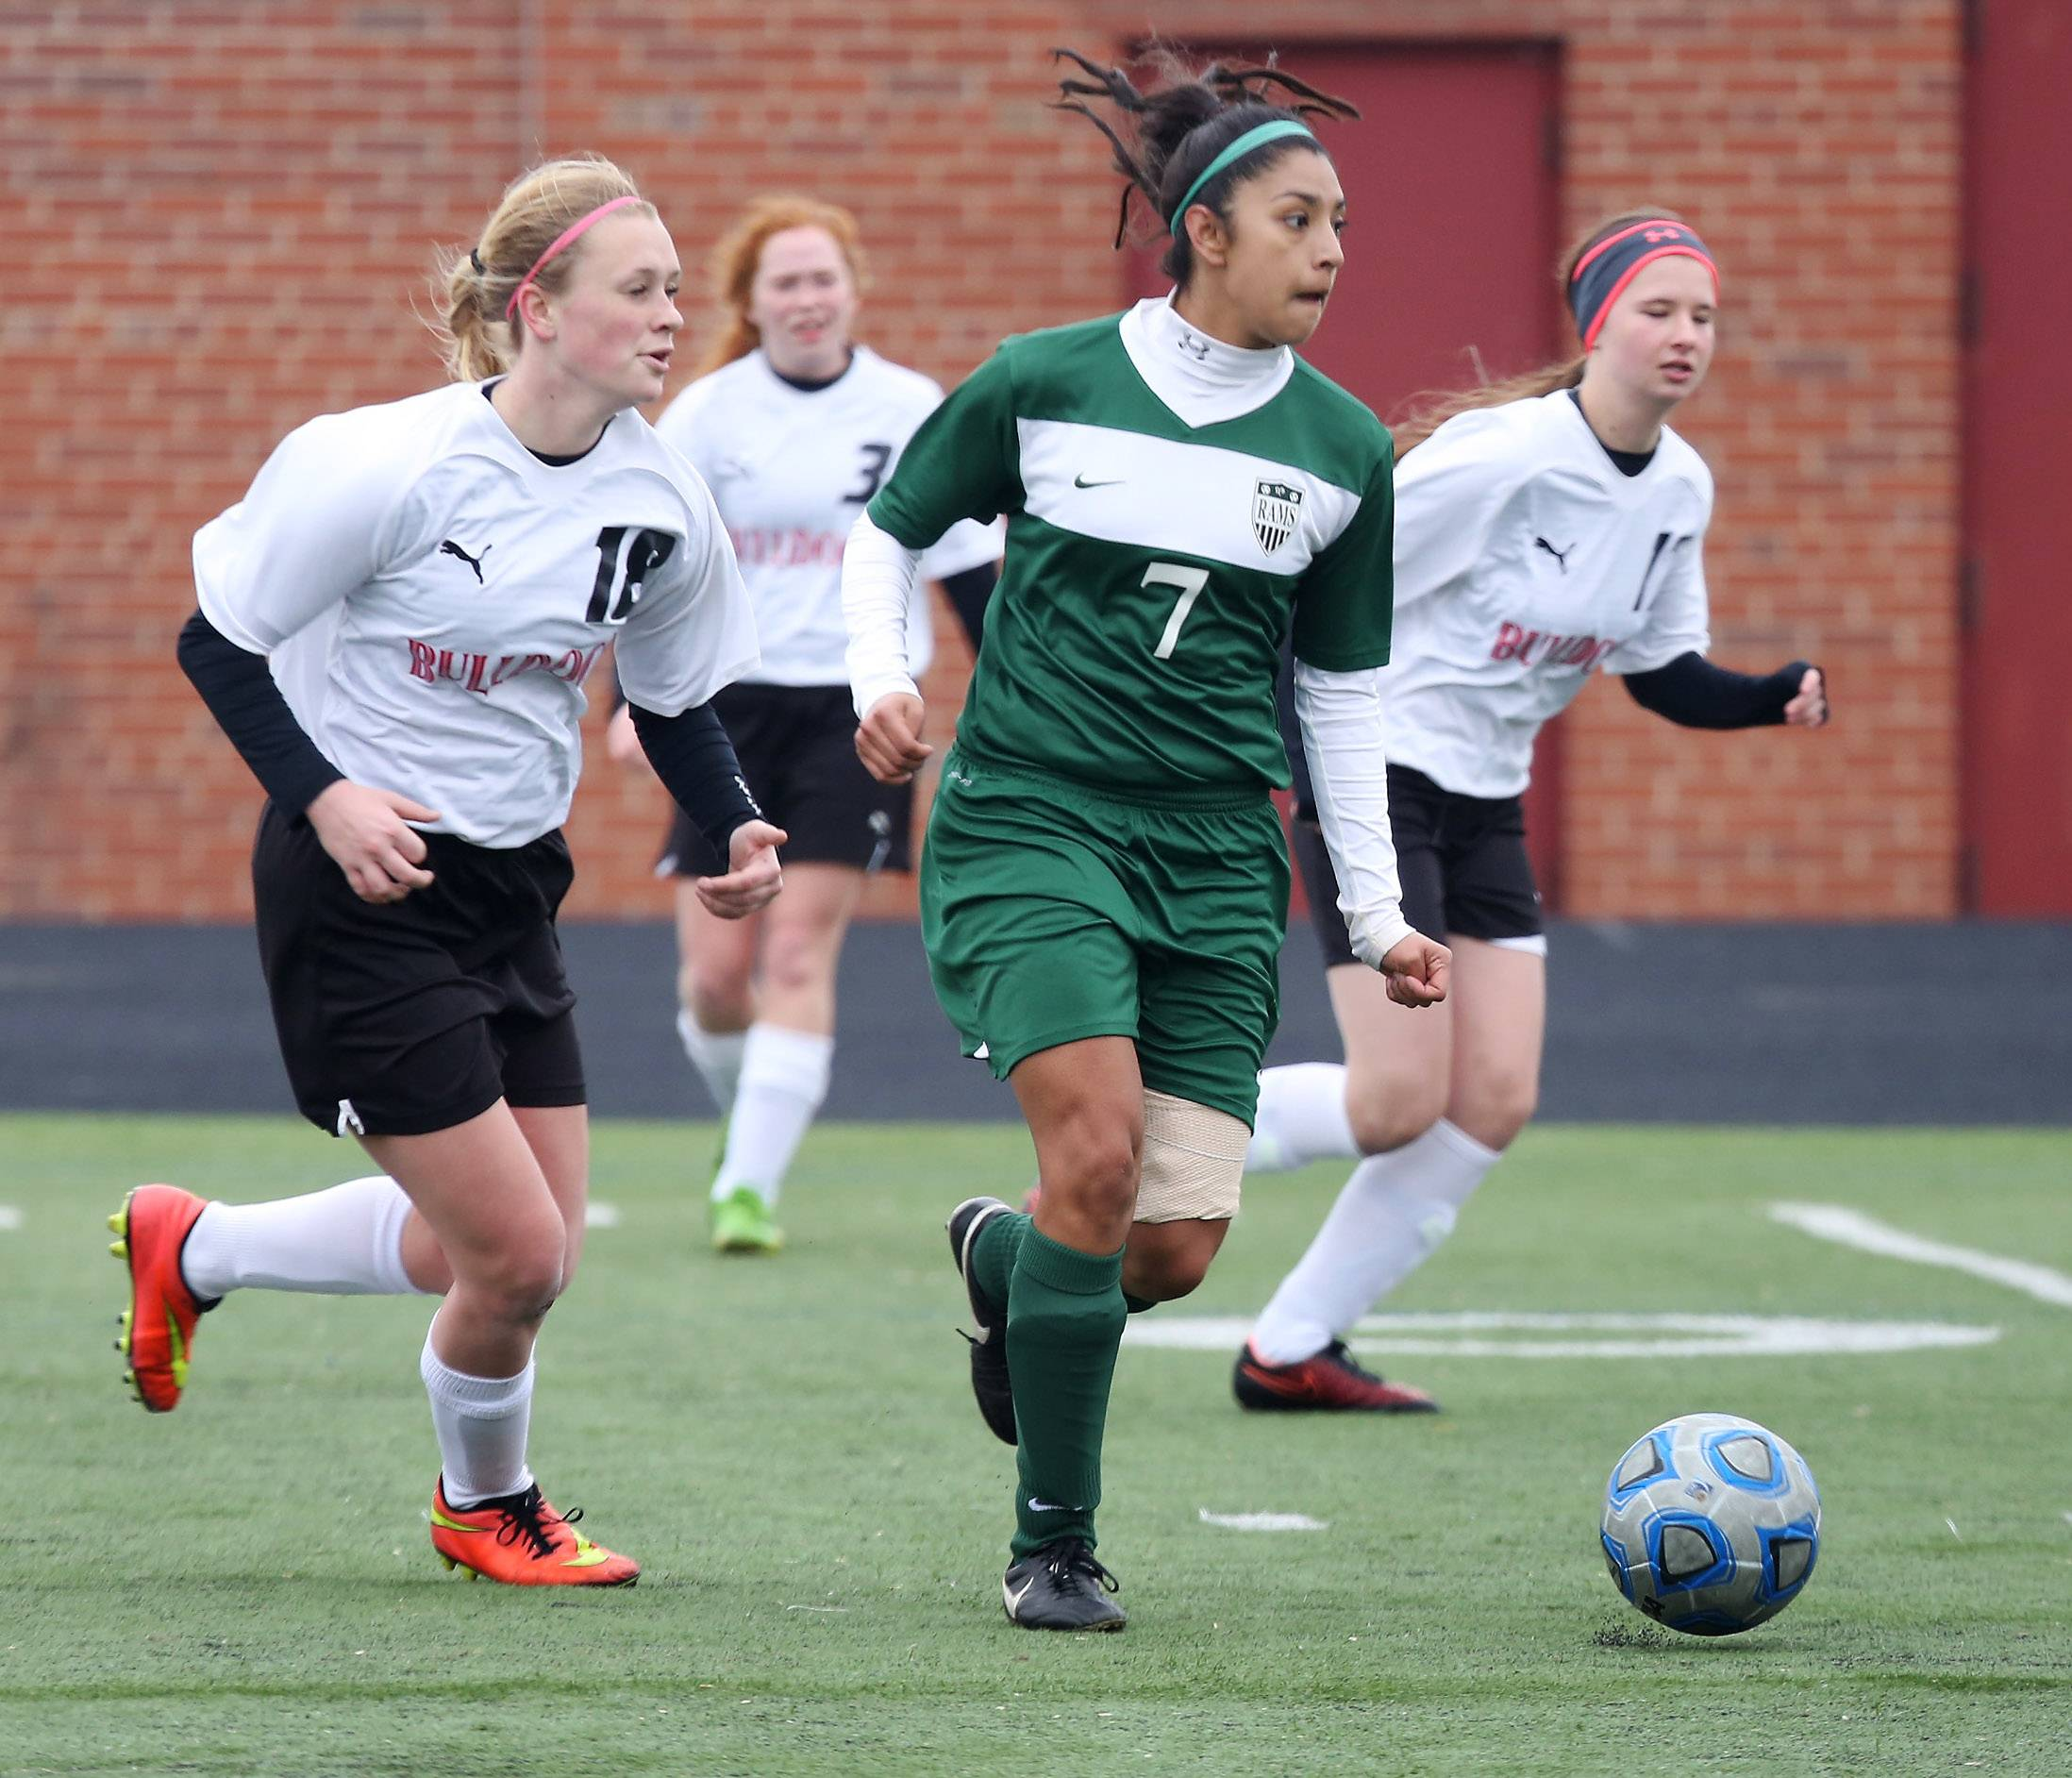 Forward Karleen Gomez, here competing for Grant, is off to quick start with Augustana's womens' soccer team this fall.